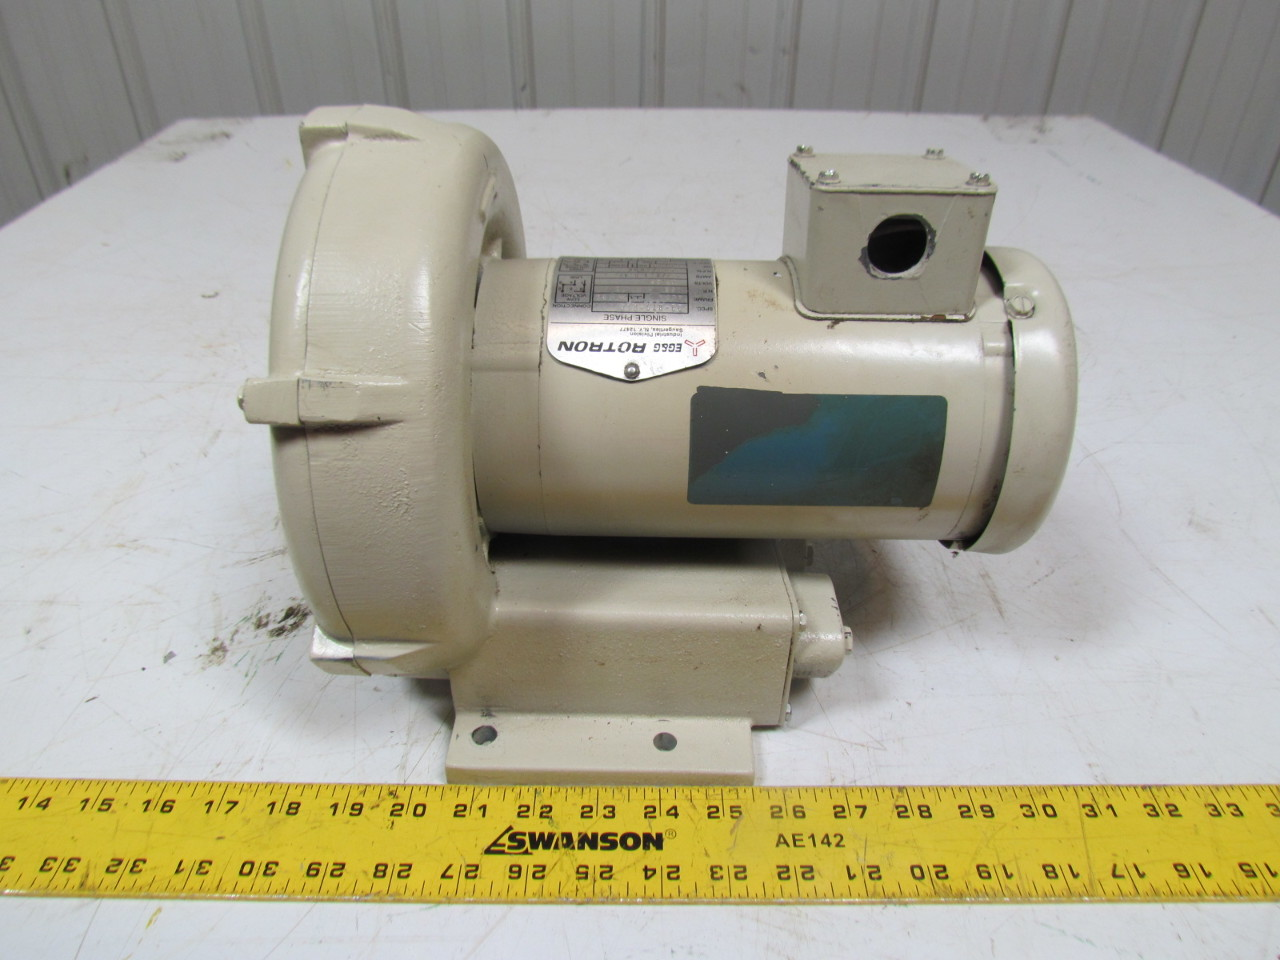 10 Hp 3400 Rpm Single Phase Electric Motor